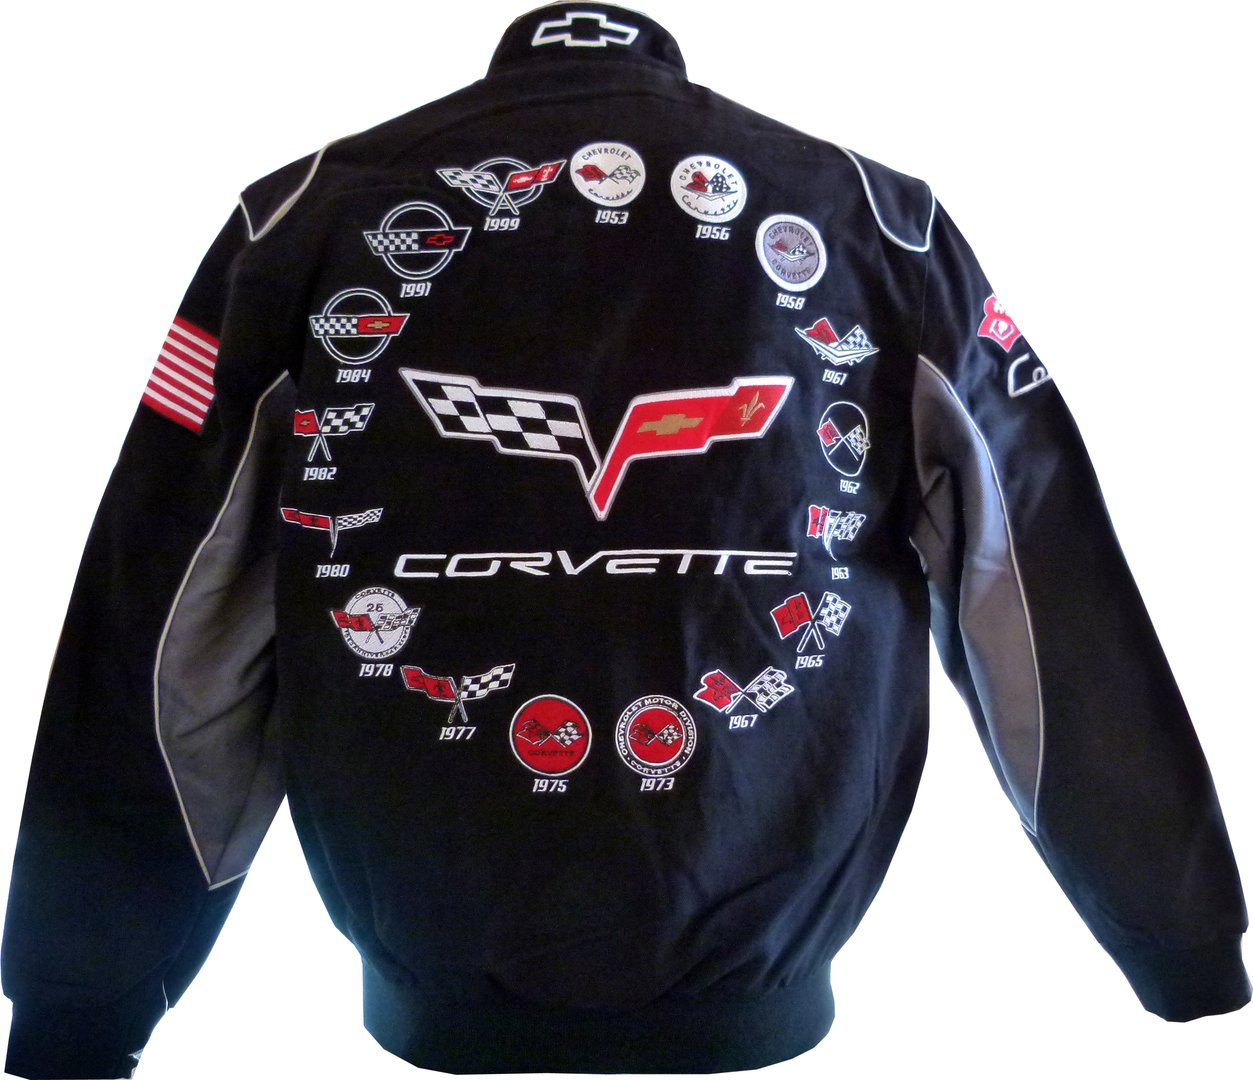 Corvette Jacket Limited Edition Us Car And Nascar